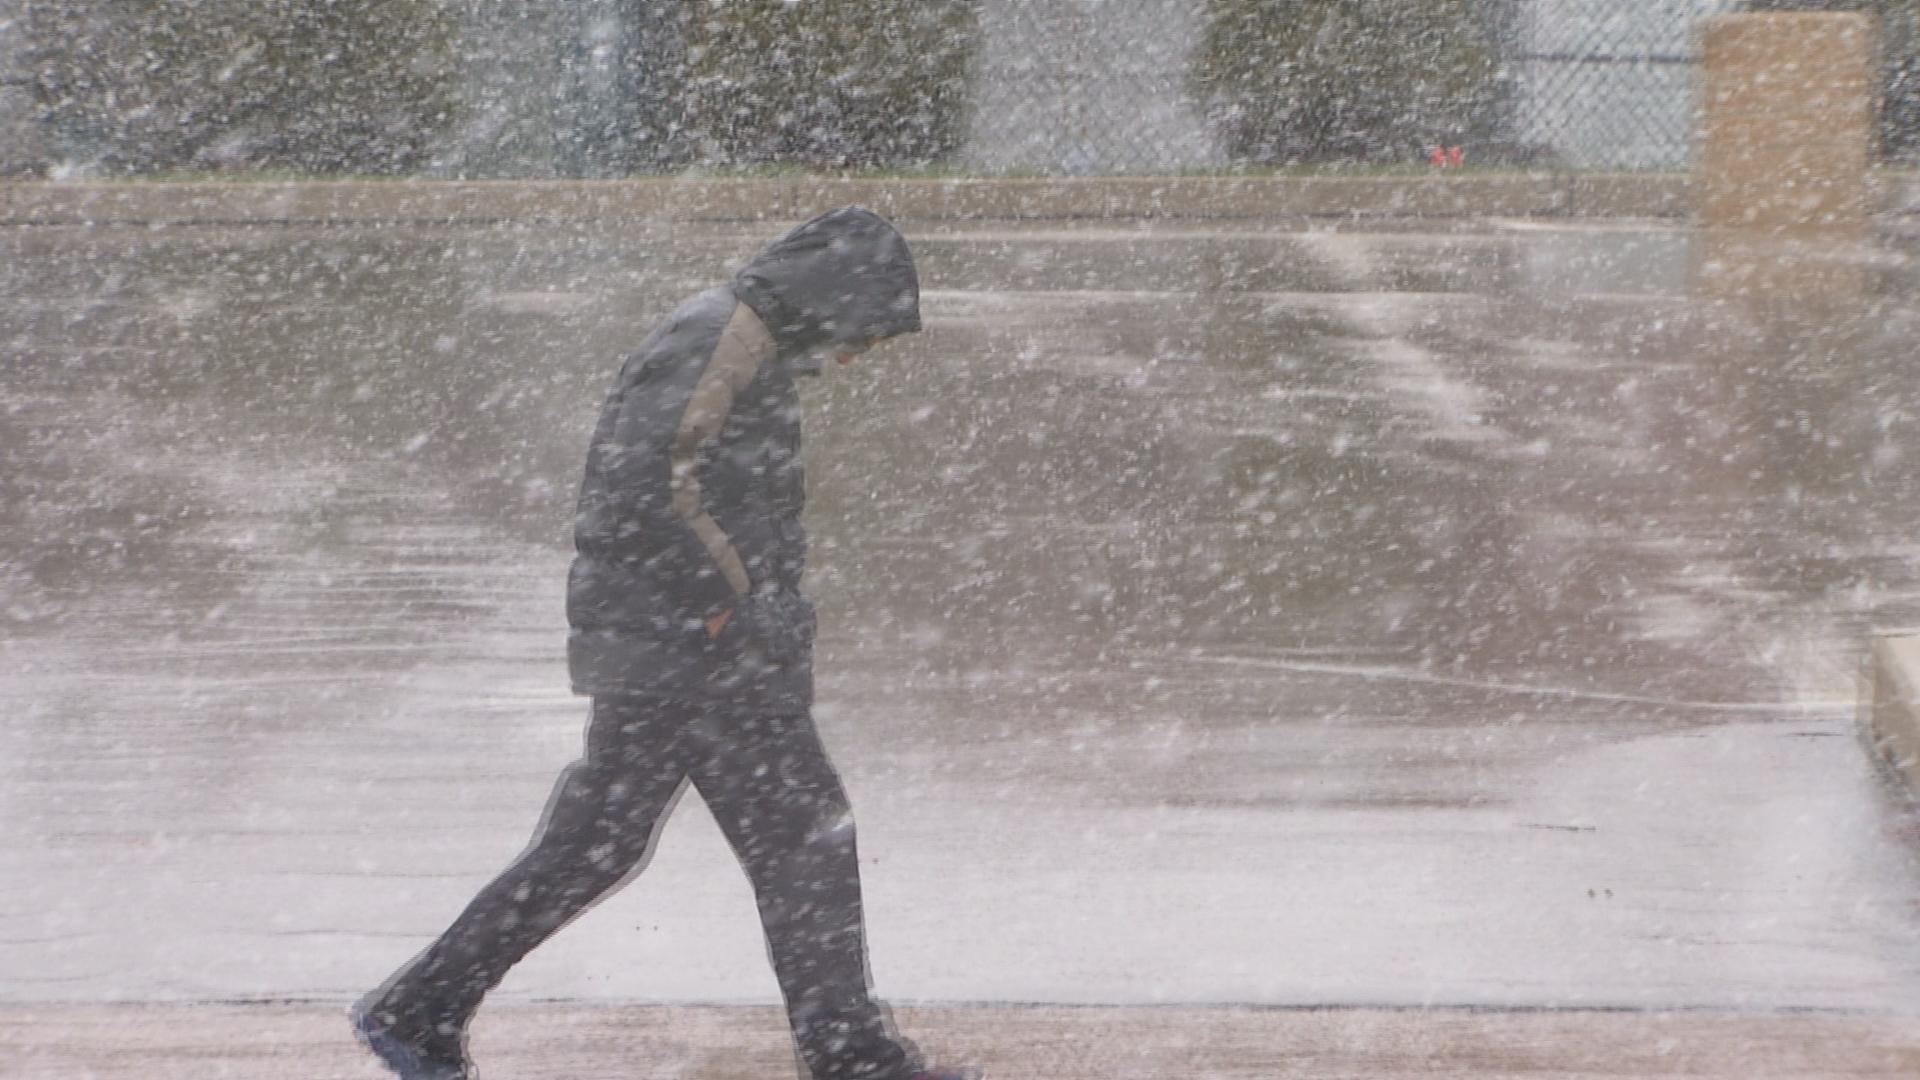 Chicago Area Wakes Up to Snow